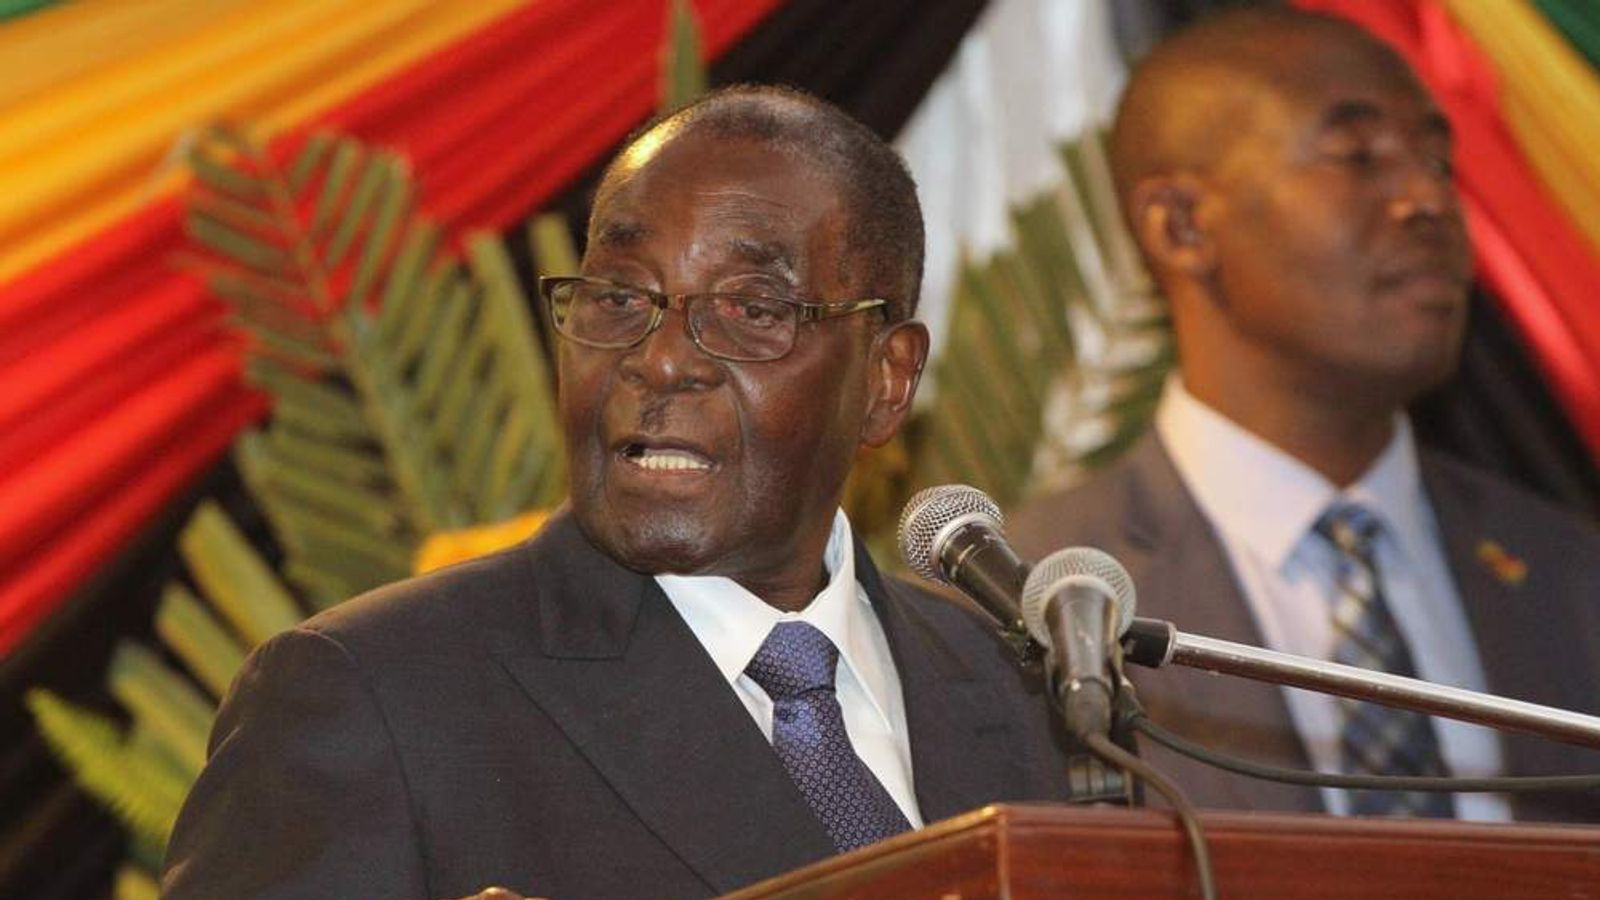 Zimbabwe's President Mugabe gives the speech he intended to make at parliament on Tuesday, at a hotel in the Zimbabwean capital Harare